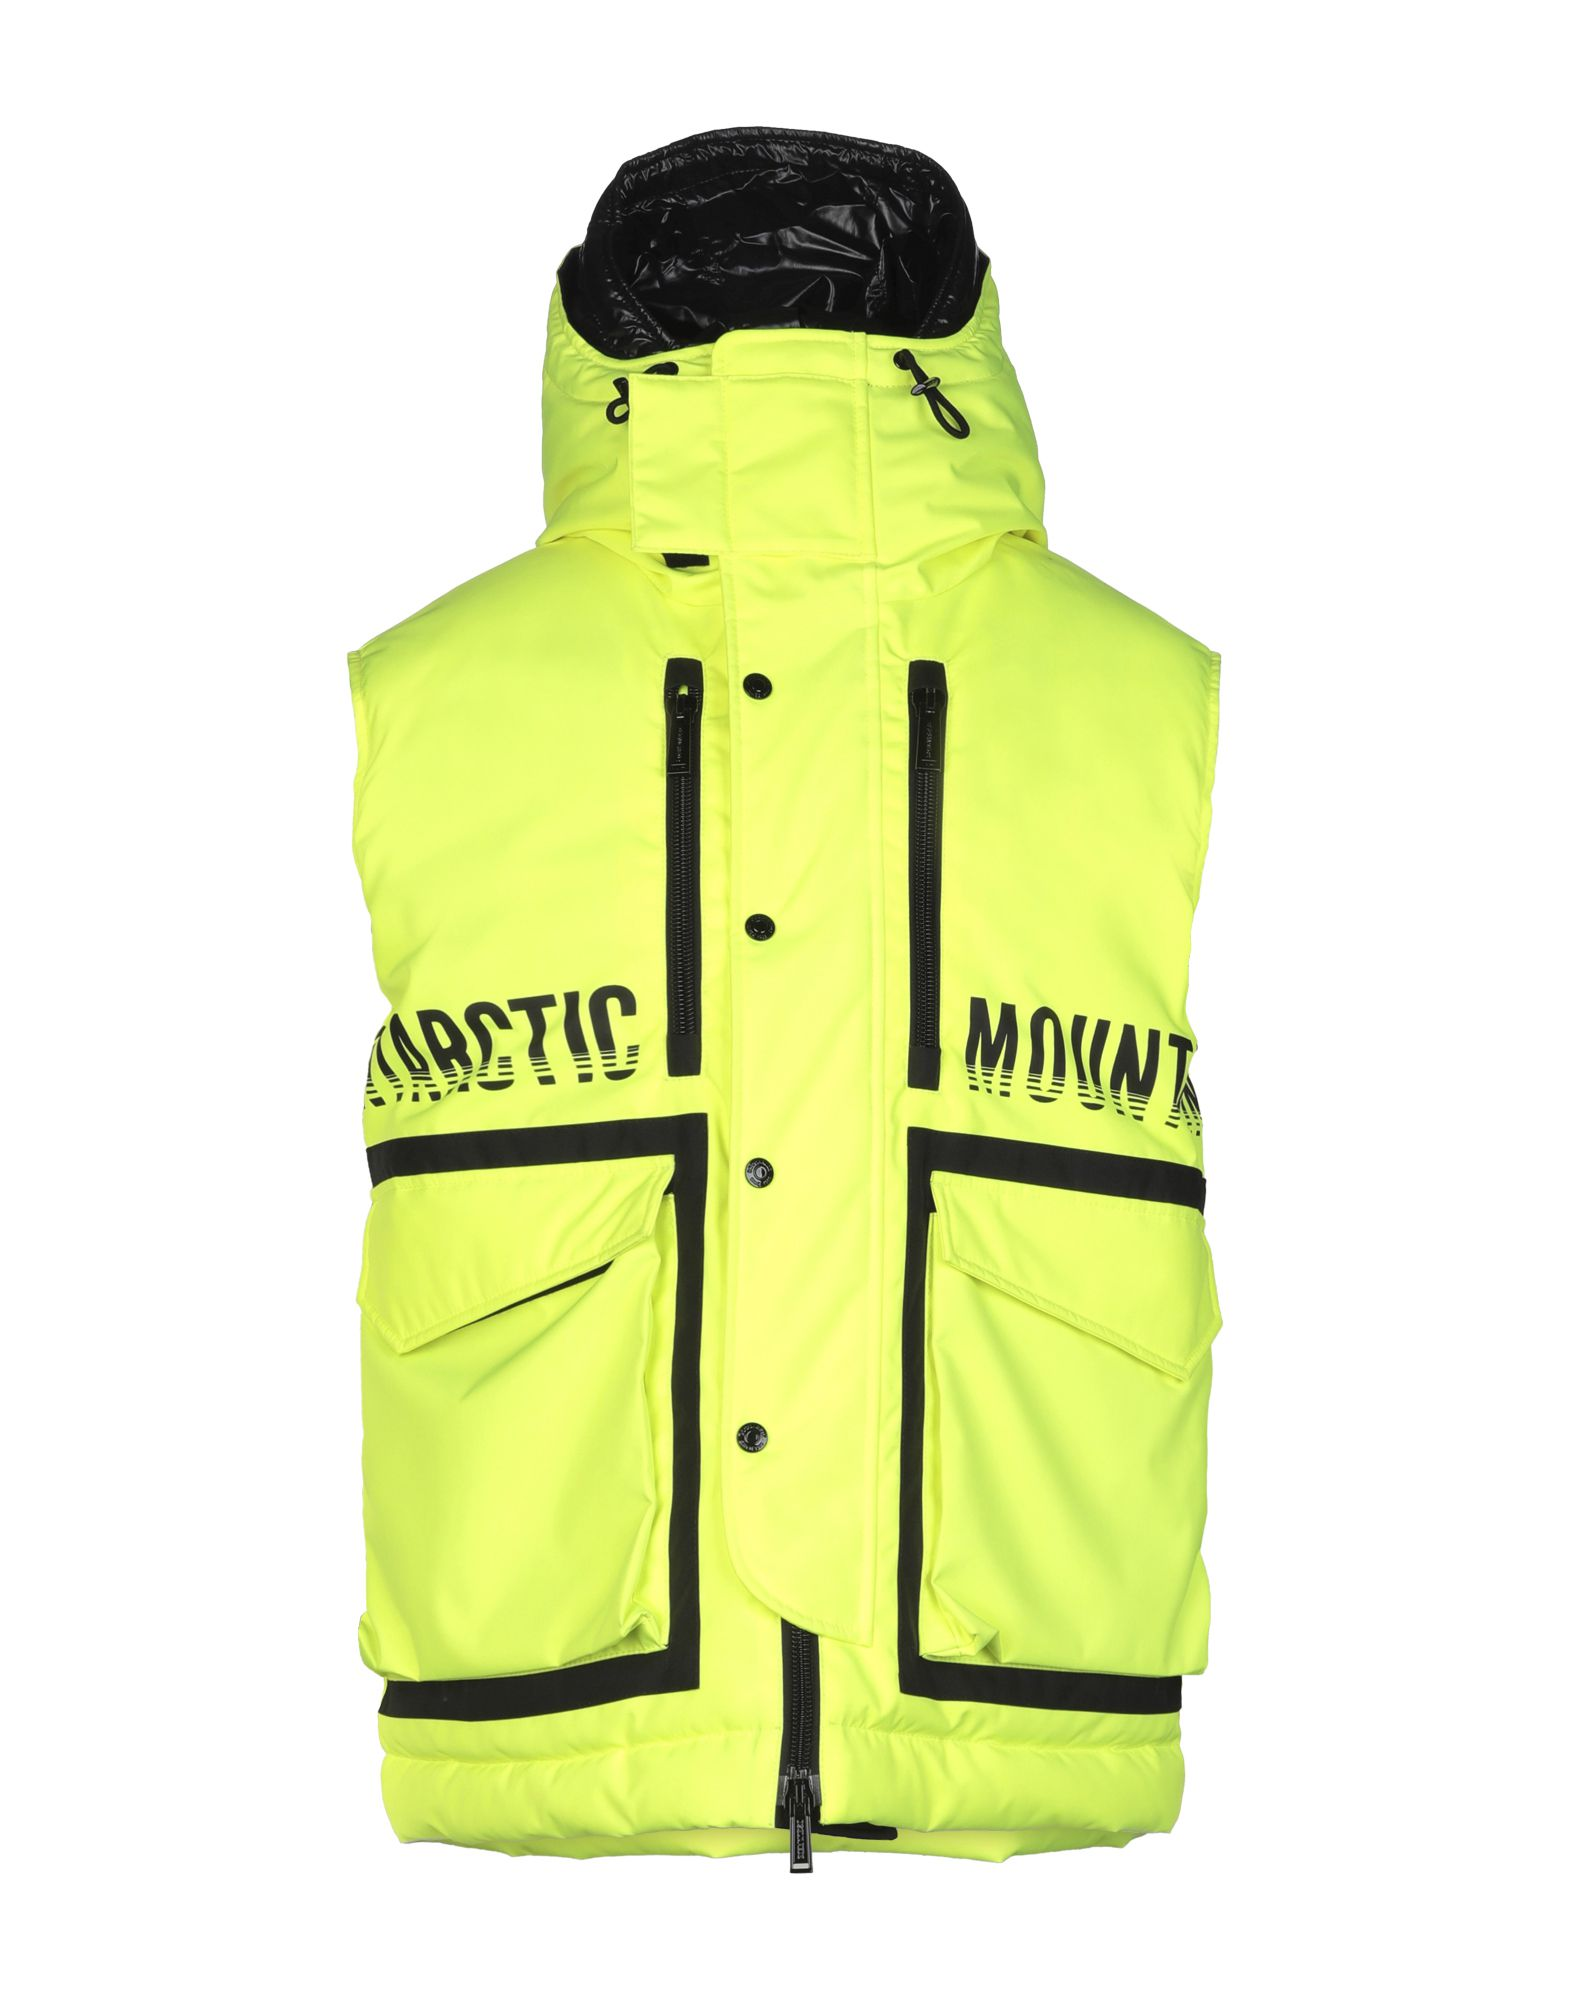 DSQUARED2 Synthetic Down Jackets. techno fabric, logo, solid color, single-breasted, snap-buttons, zip, hooded collar, multipockets, sleeveless, internal padding. 100% Polyester, Polyurethane, Polyamide